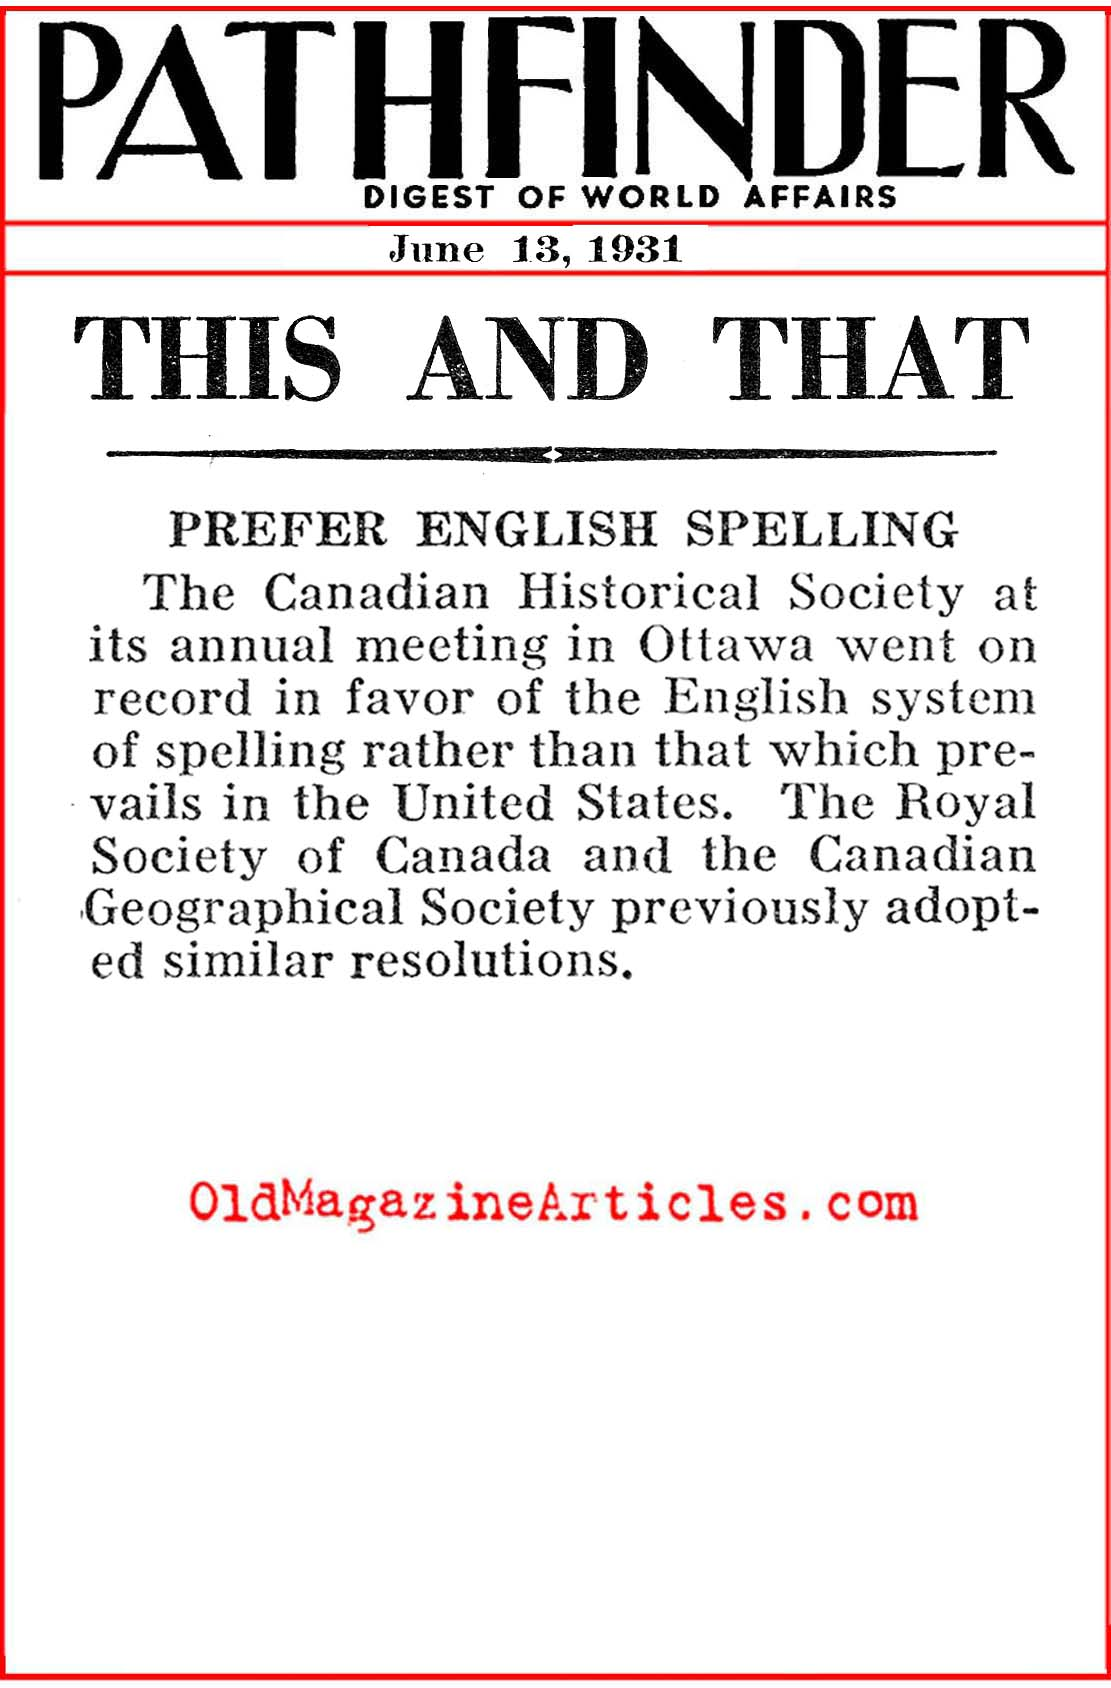 American Spelling Rejected (Pathfinder Magazine, 1931)